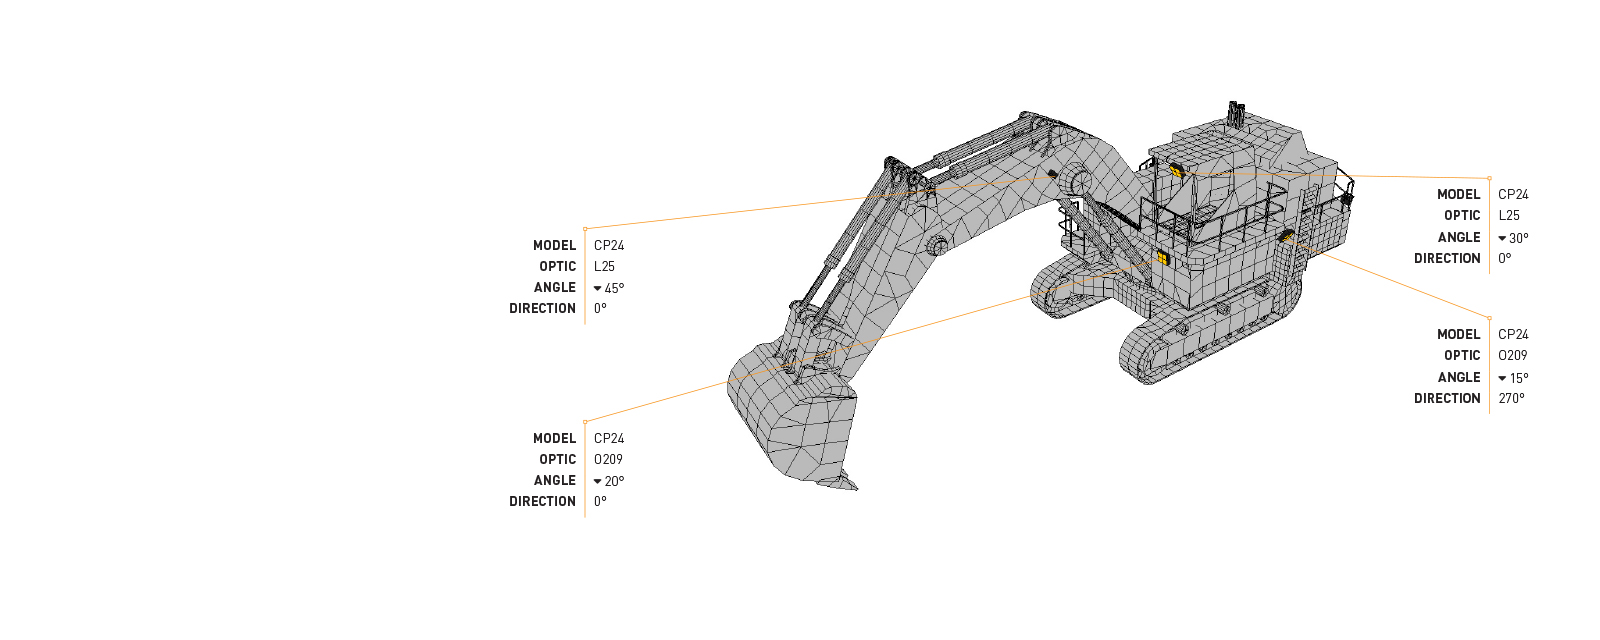 In this Lighting Design Simulation Report,  observe how the CP24 LED Floodlight transforms the light output of a Komatsu PC2000 hydraulic excavator.